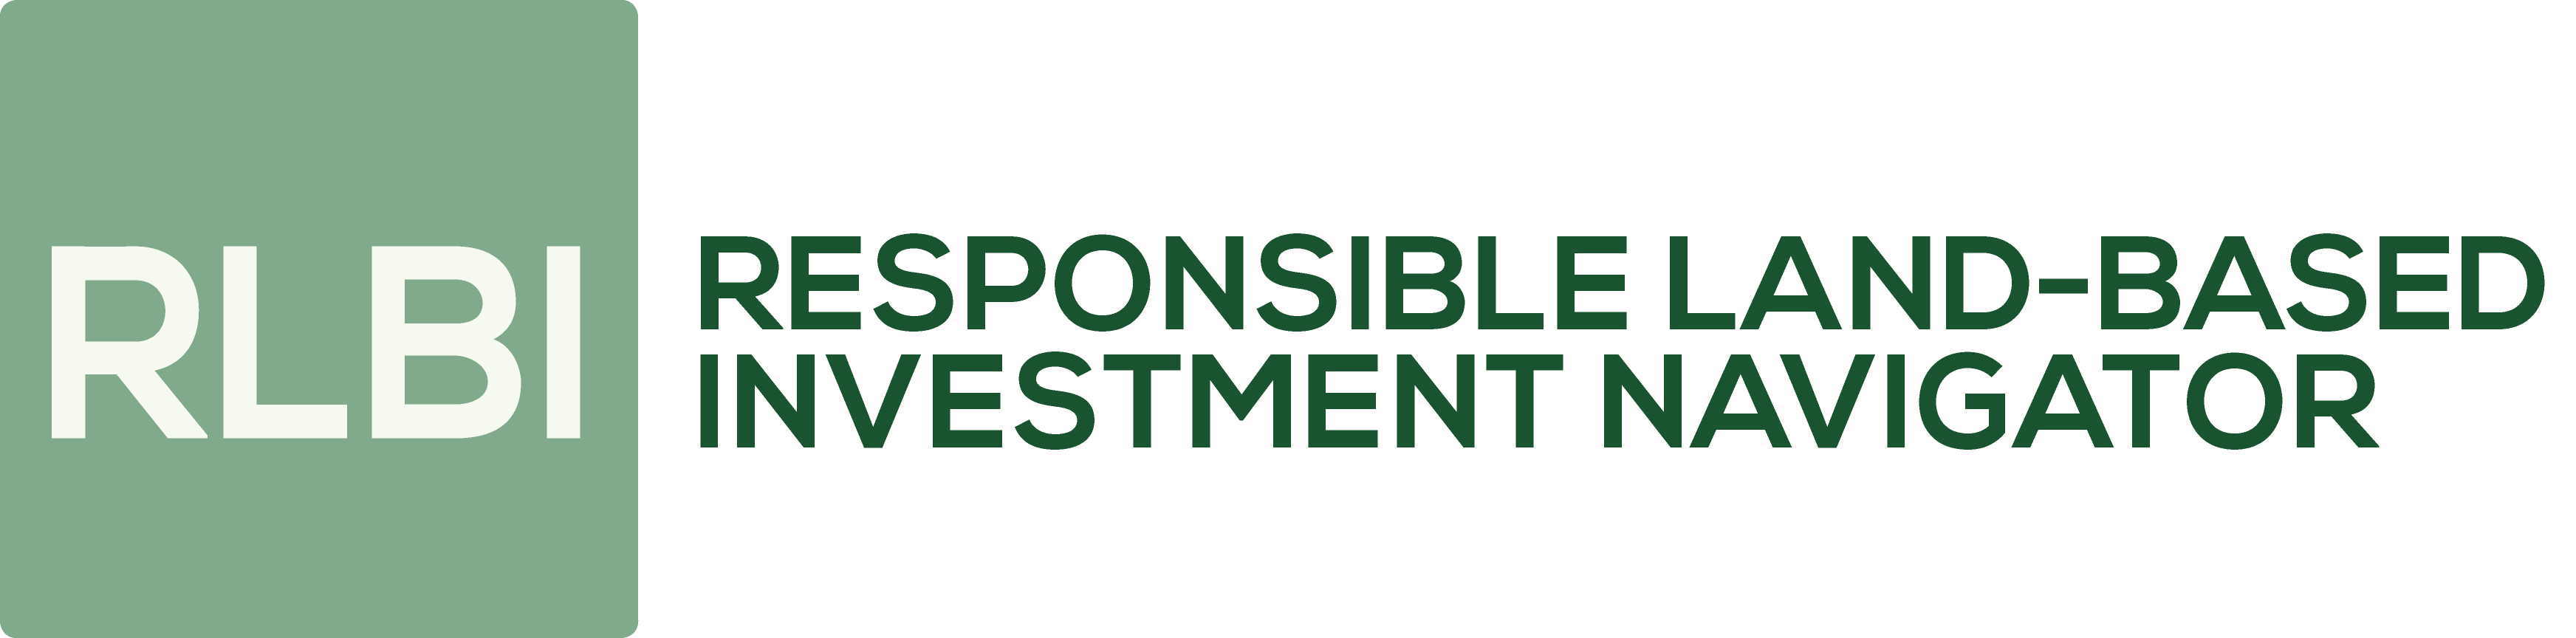 Responsible Land Based Investment Navigator